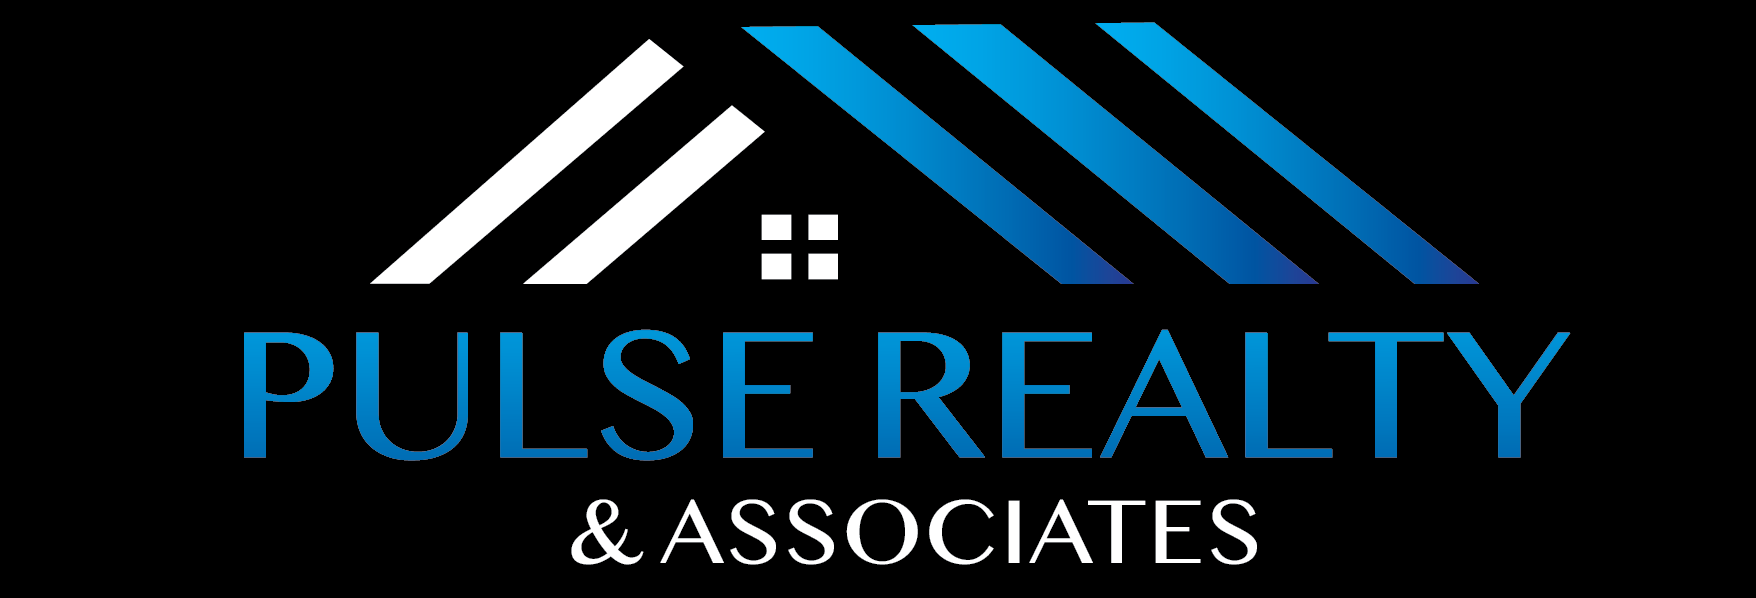 Pulse Realty Associates Logo 424x144.png